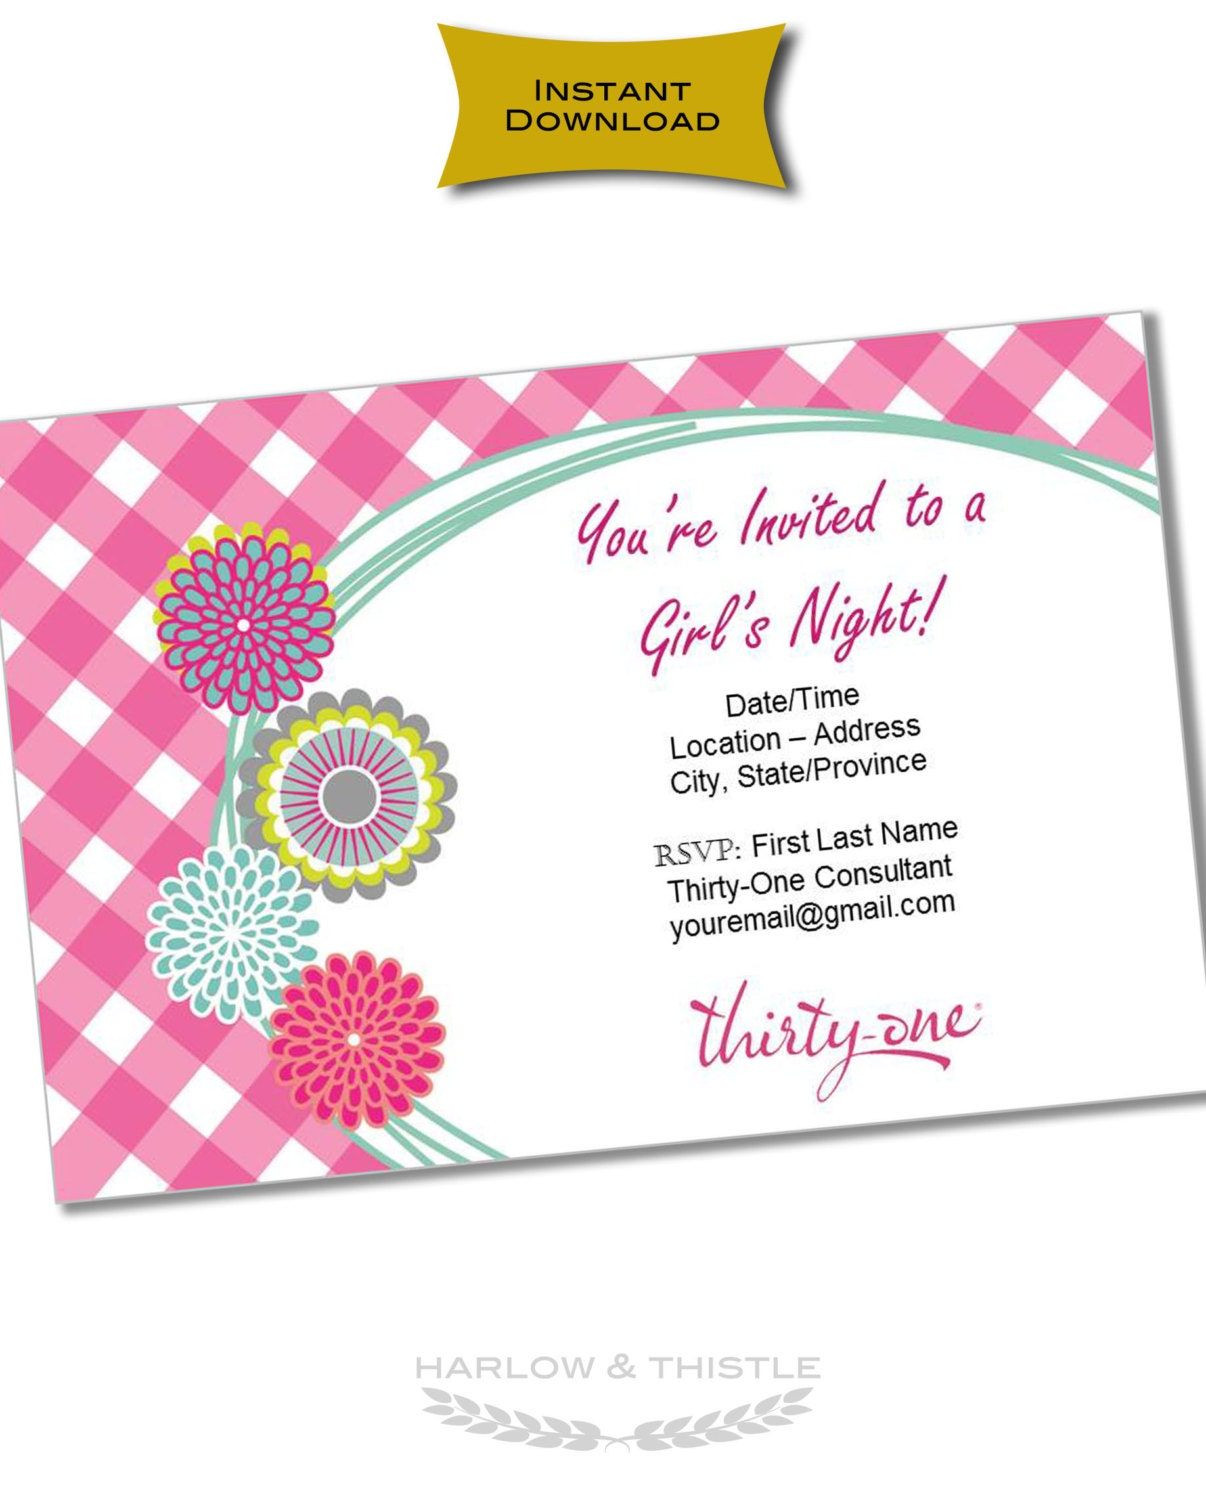 INSTANT DOWNLOAD Thirty-One Gifts Invitation Customizable